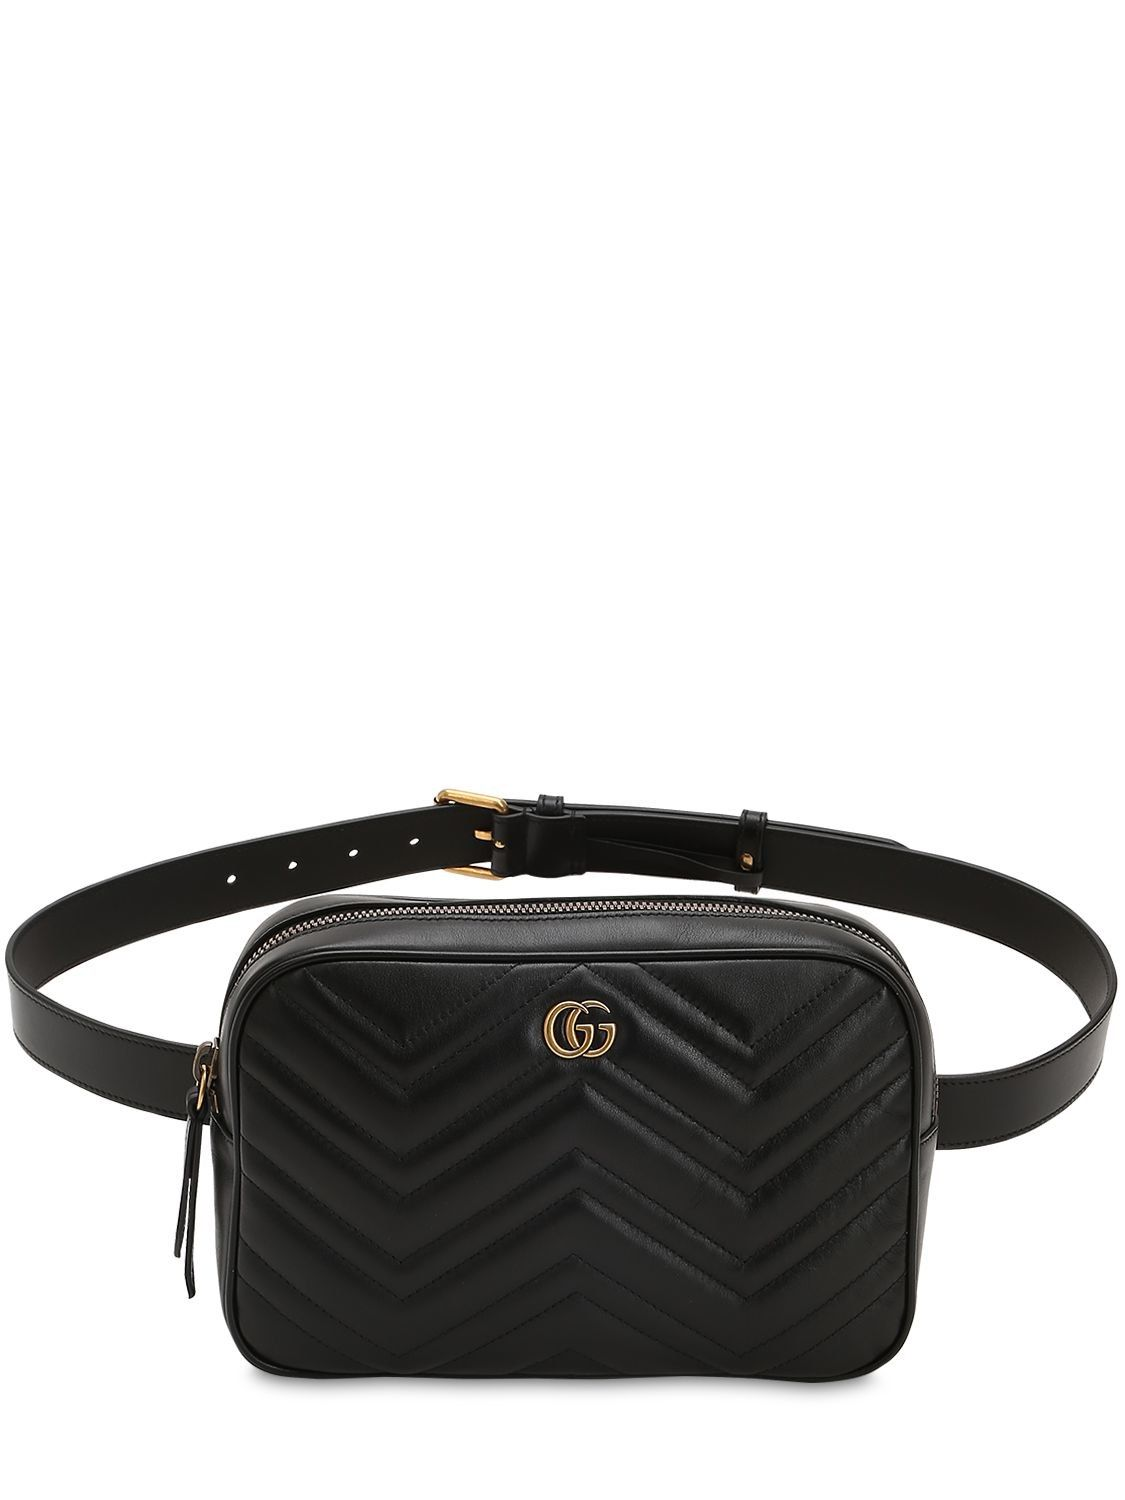 143840579cb5 GUCCI GG MARMONT 2.0 QUILTED LEATHER BELT PACK. #gucci #bags #leather #belt  bags #lining #